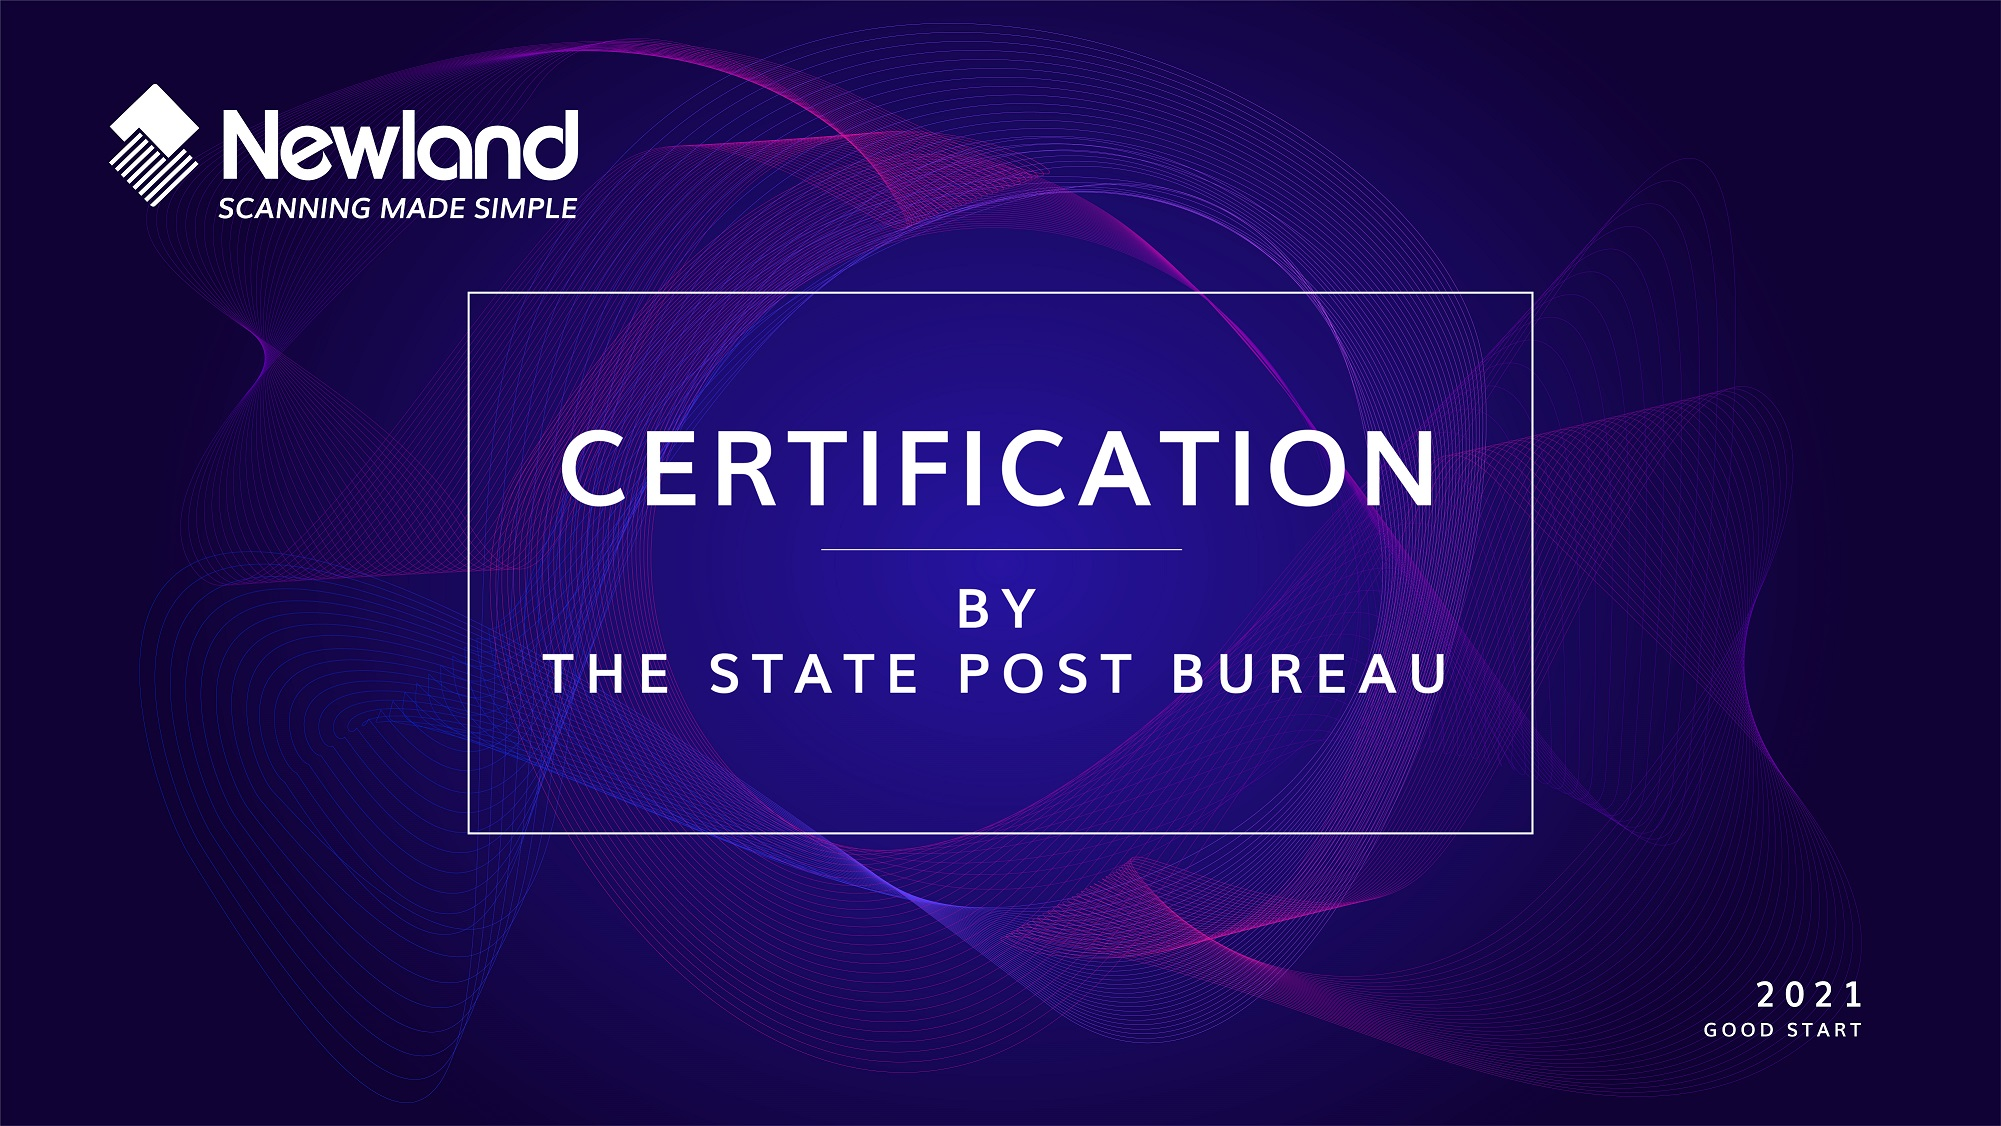 Newland is the only certified AIDC company by China Post Burea